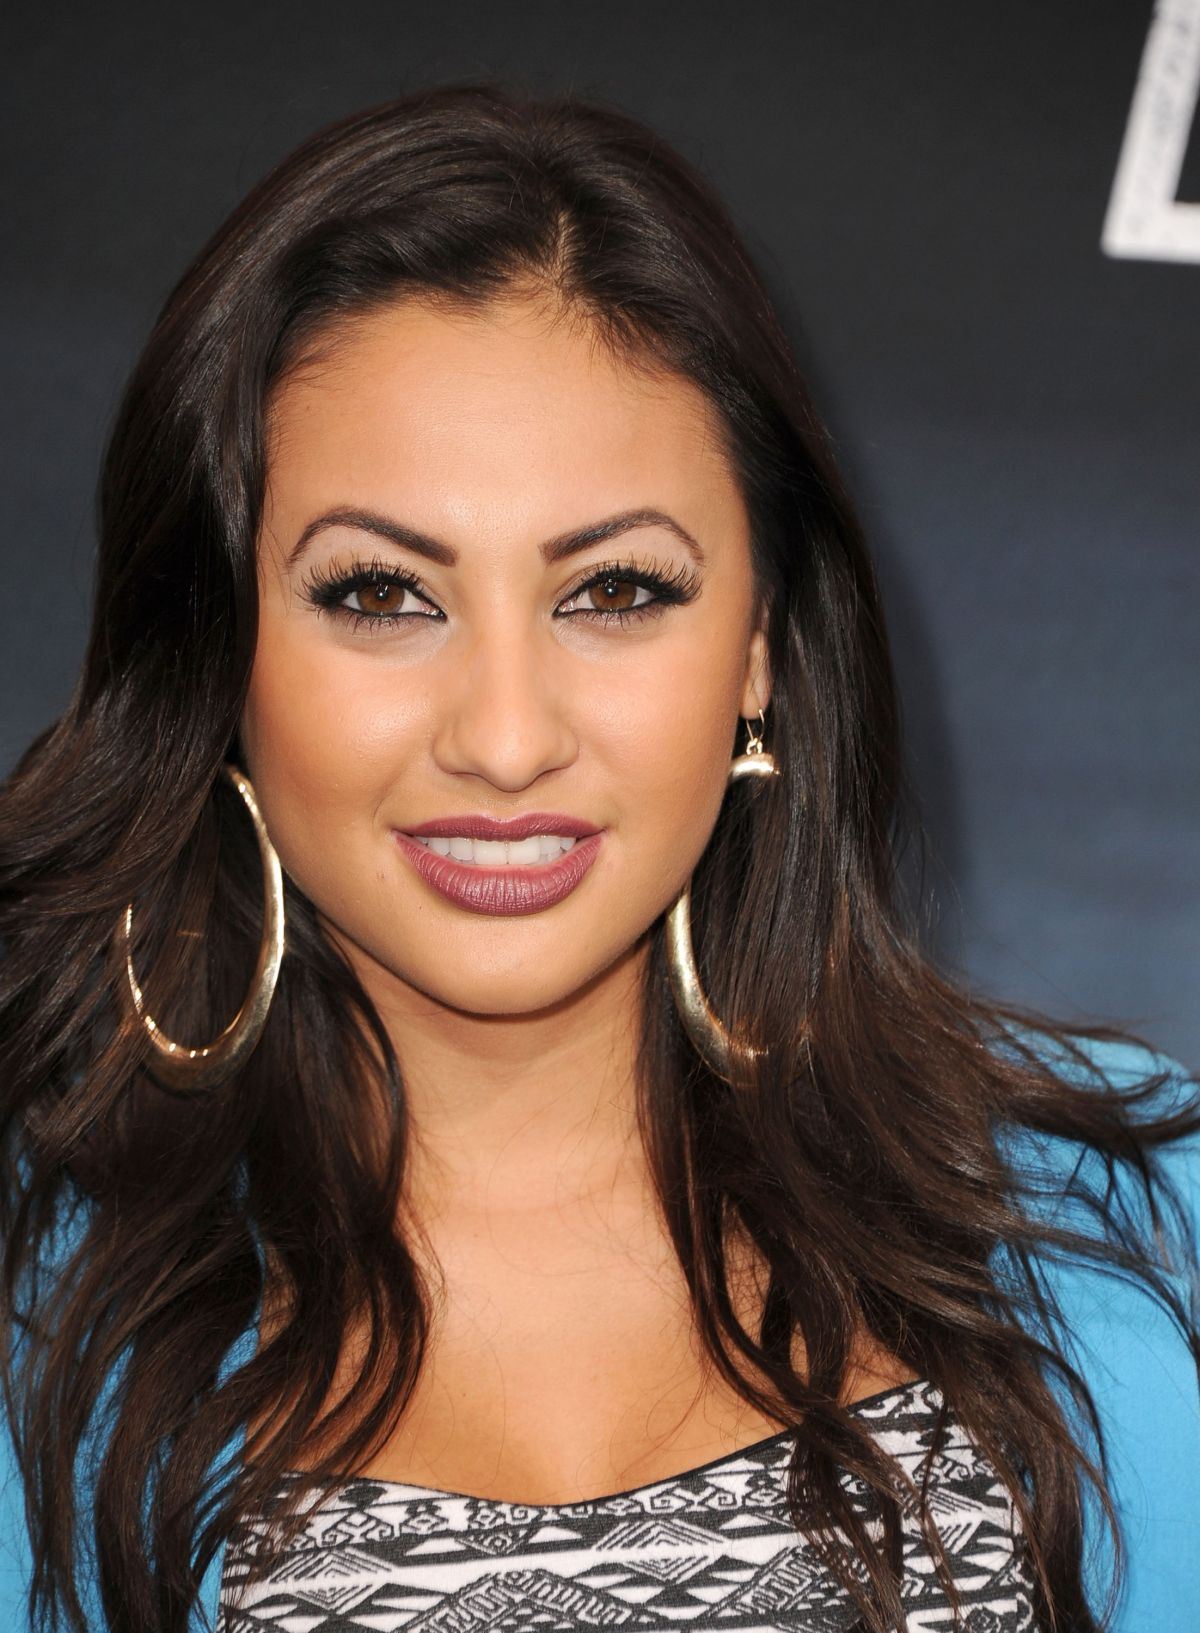 Francia Raisa At The Getaway Premiere In LA